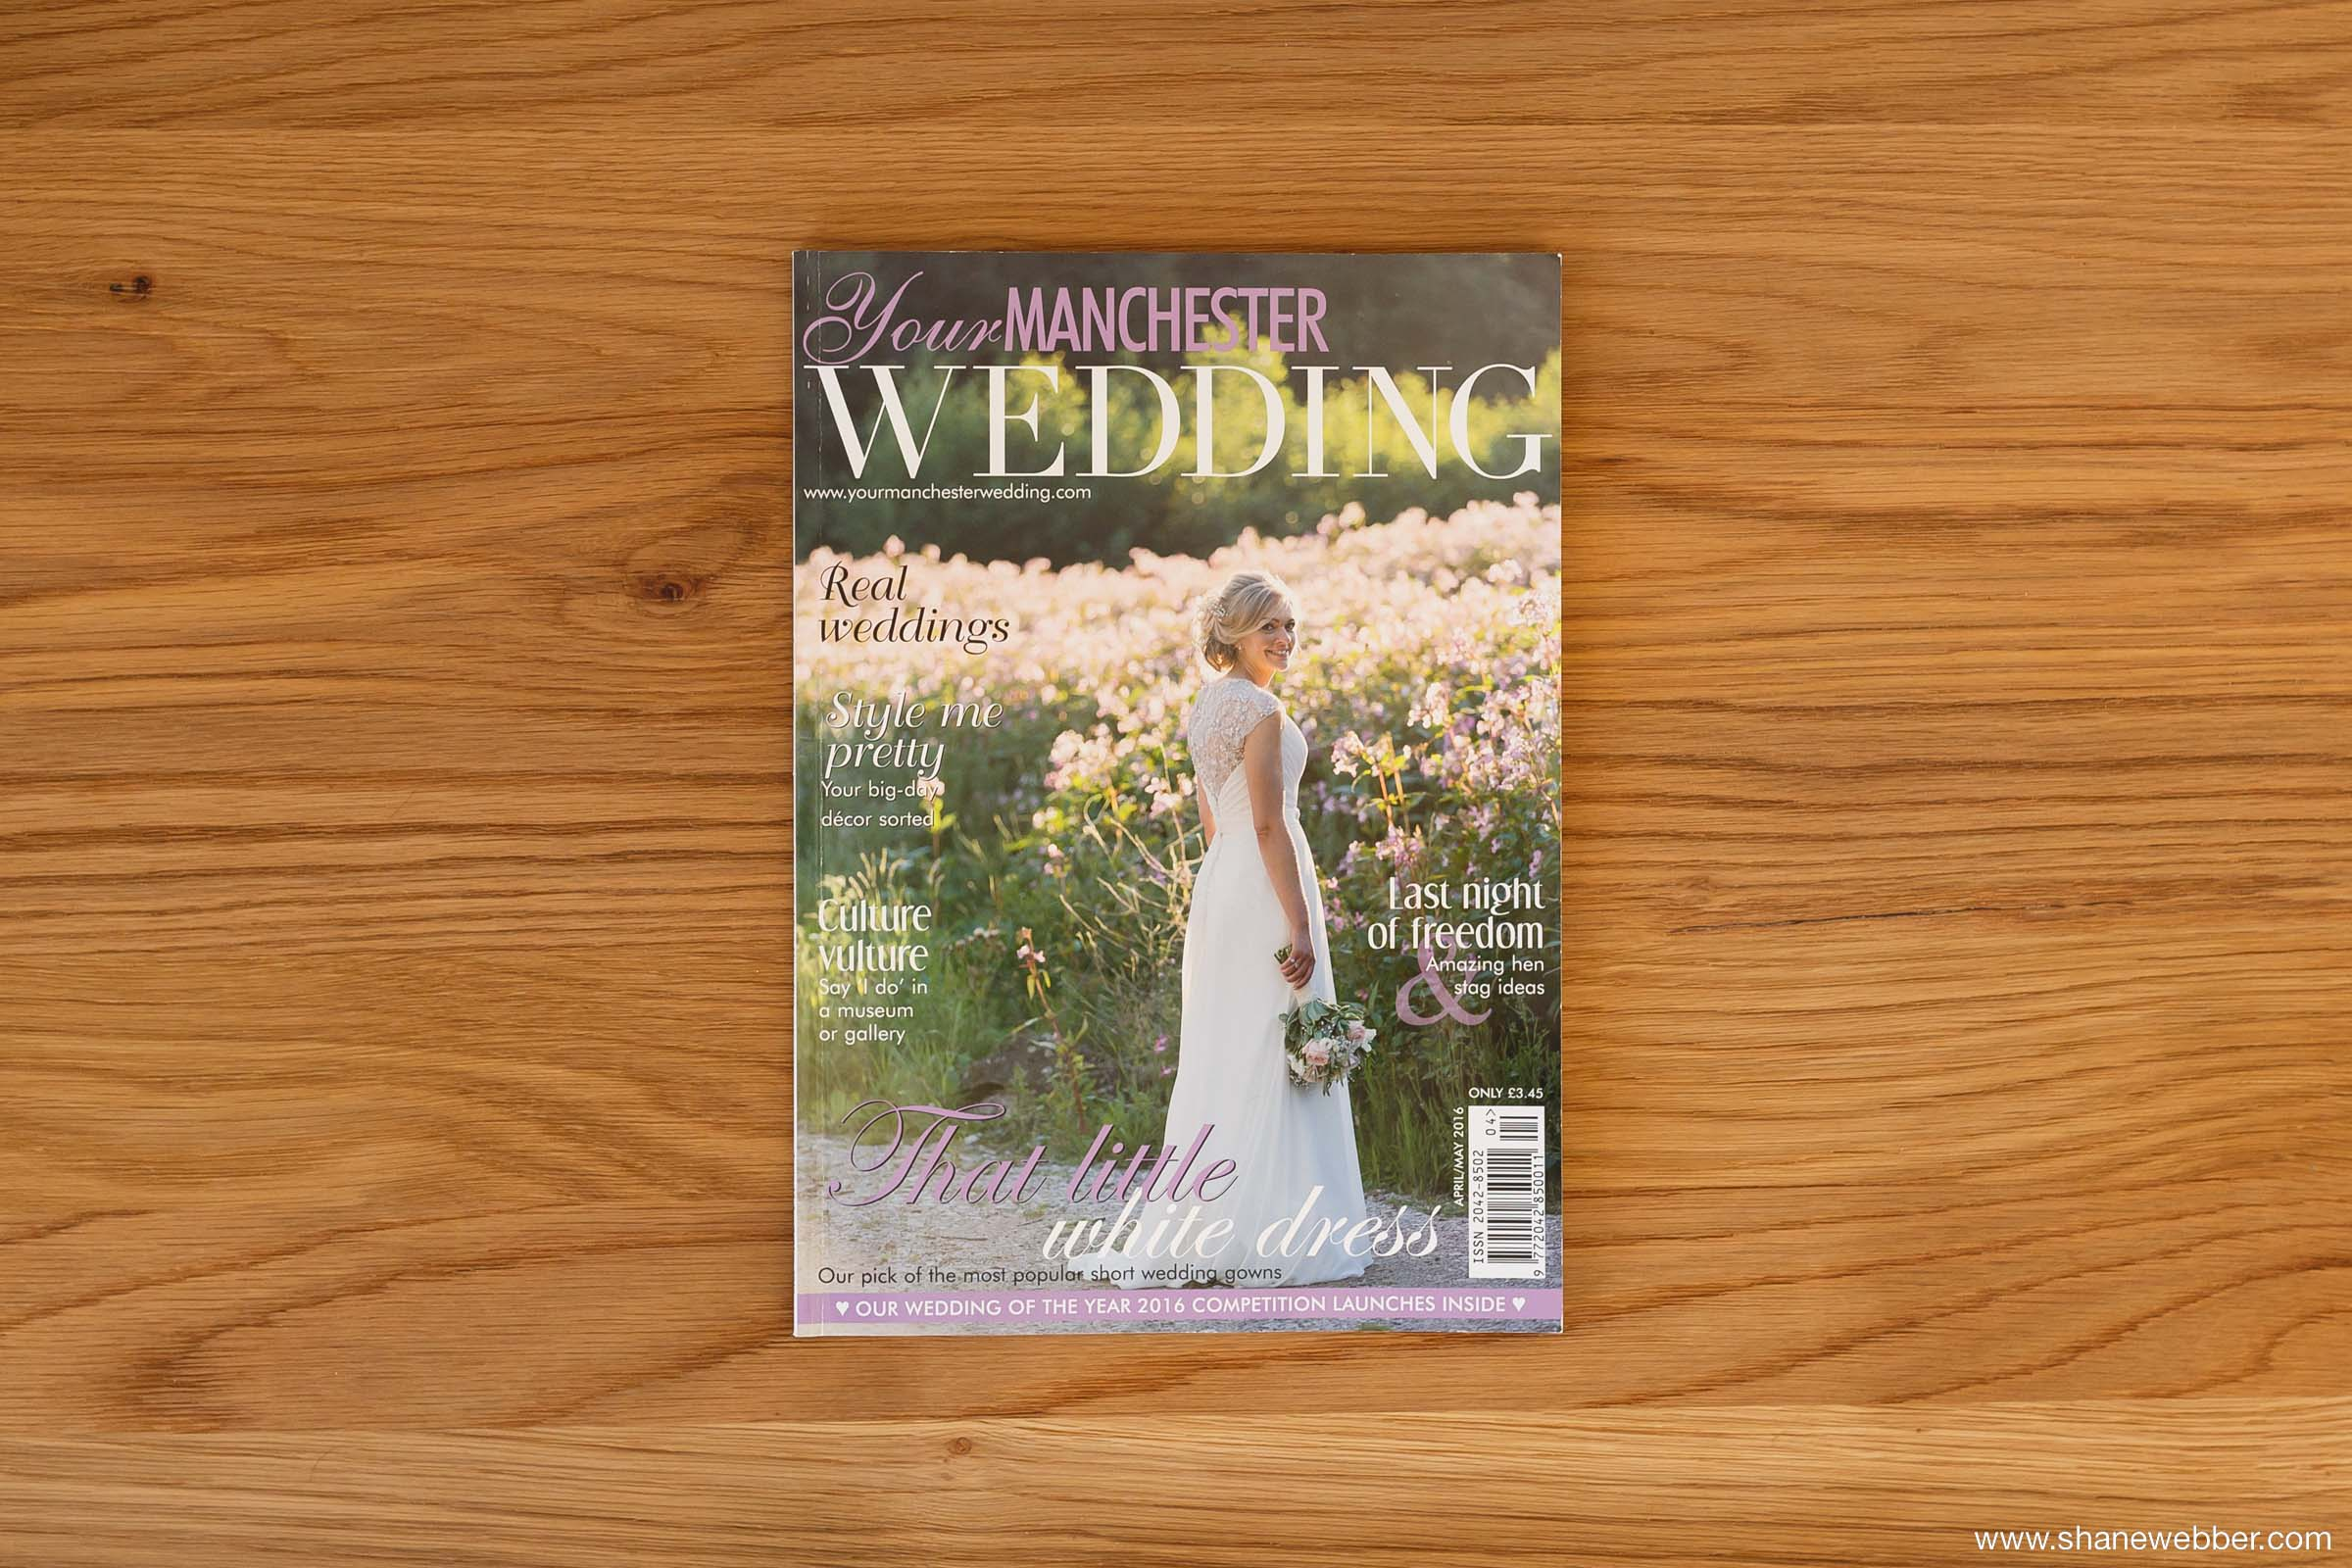 Your Manchester Wedding Magazine April 2016 Front Cover